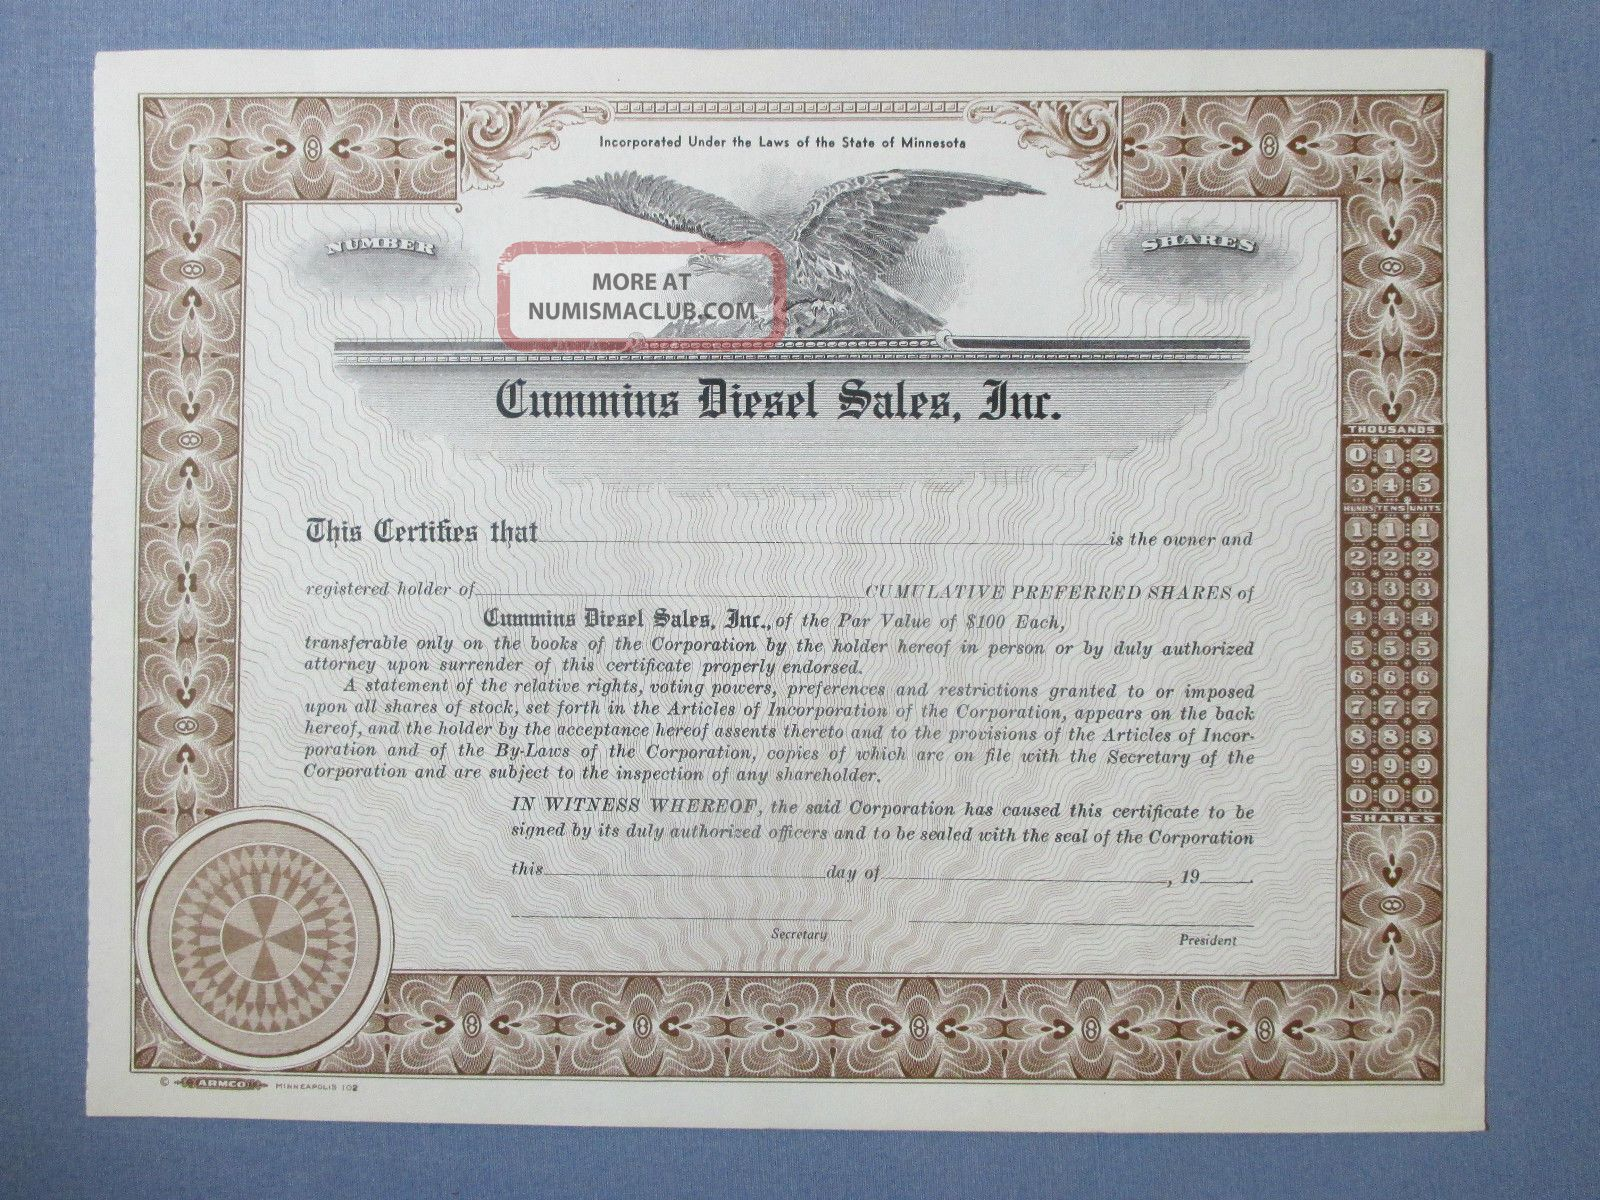 Vintage Specimen Cummins Diesel Sales Stock Certificate Minneapolis Mn Stocks & Bonds, Scripophily photo